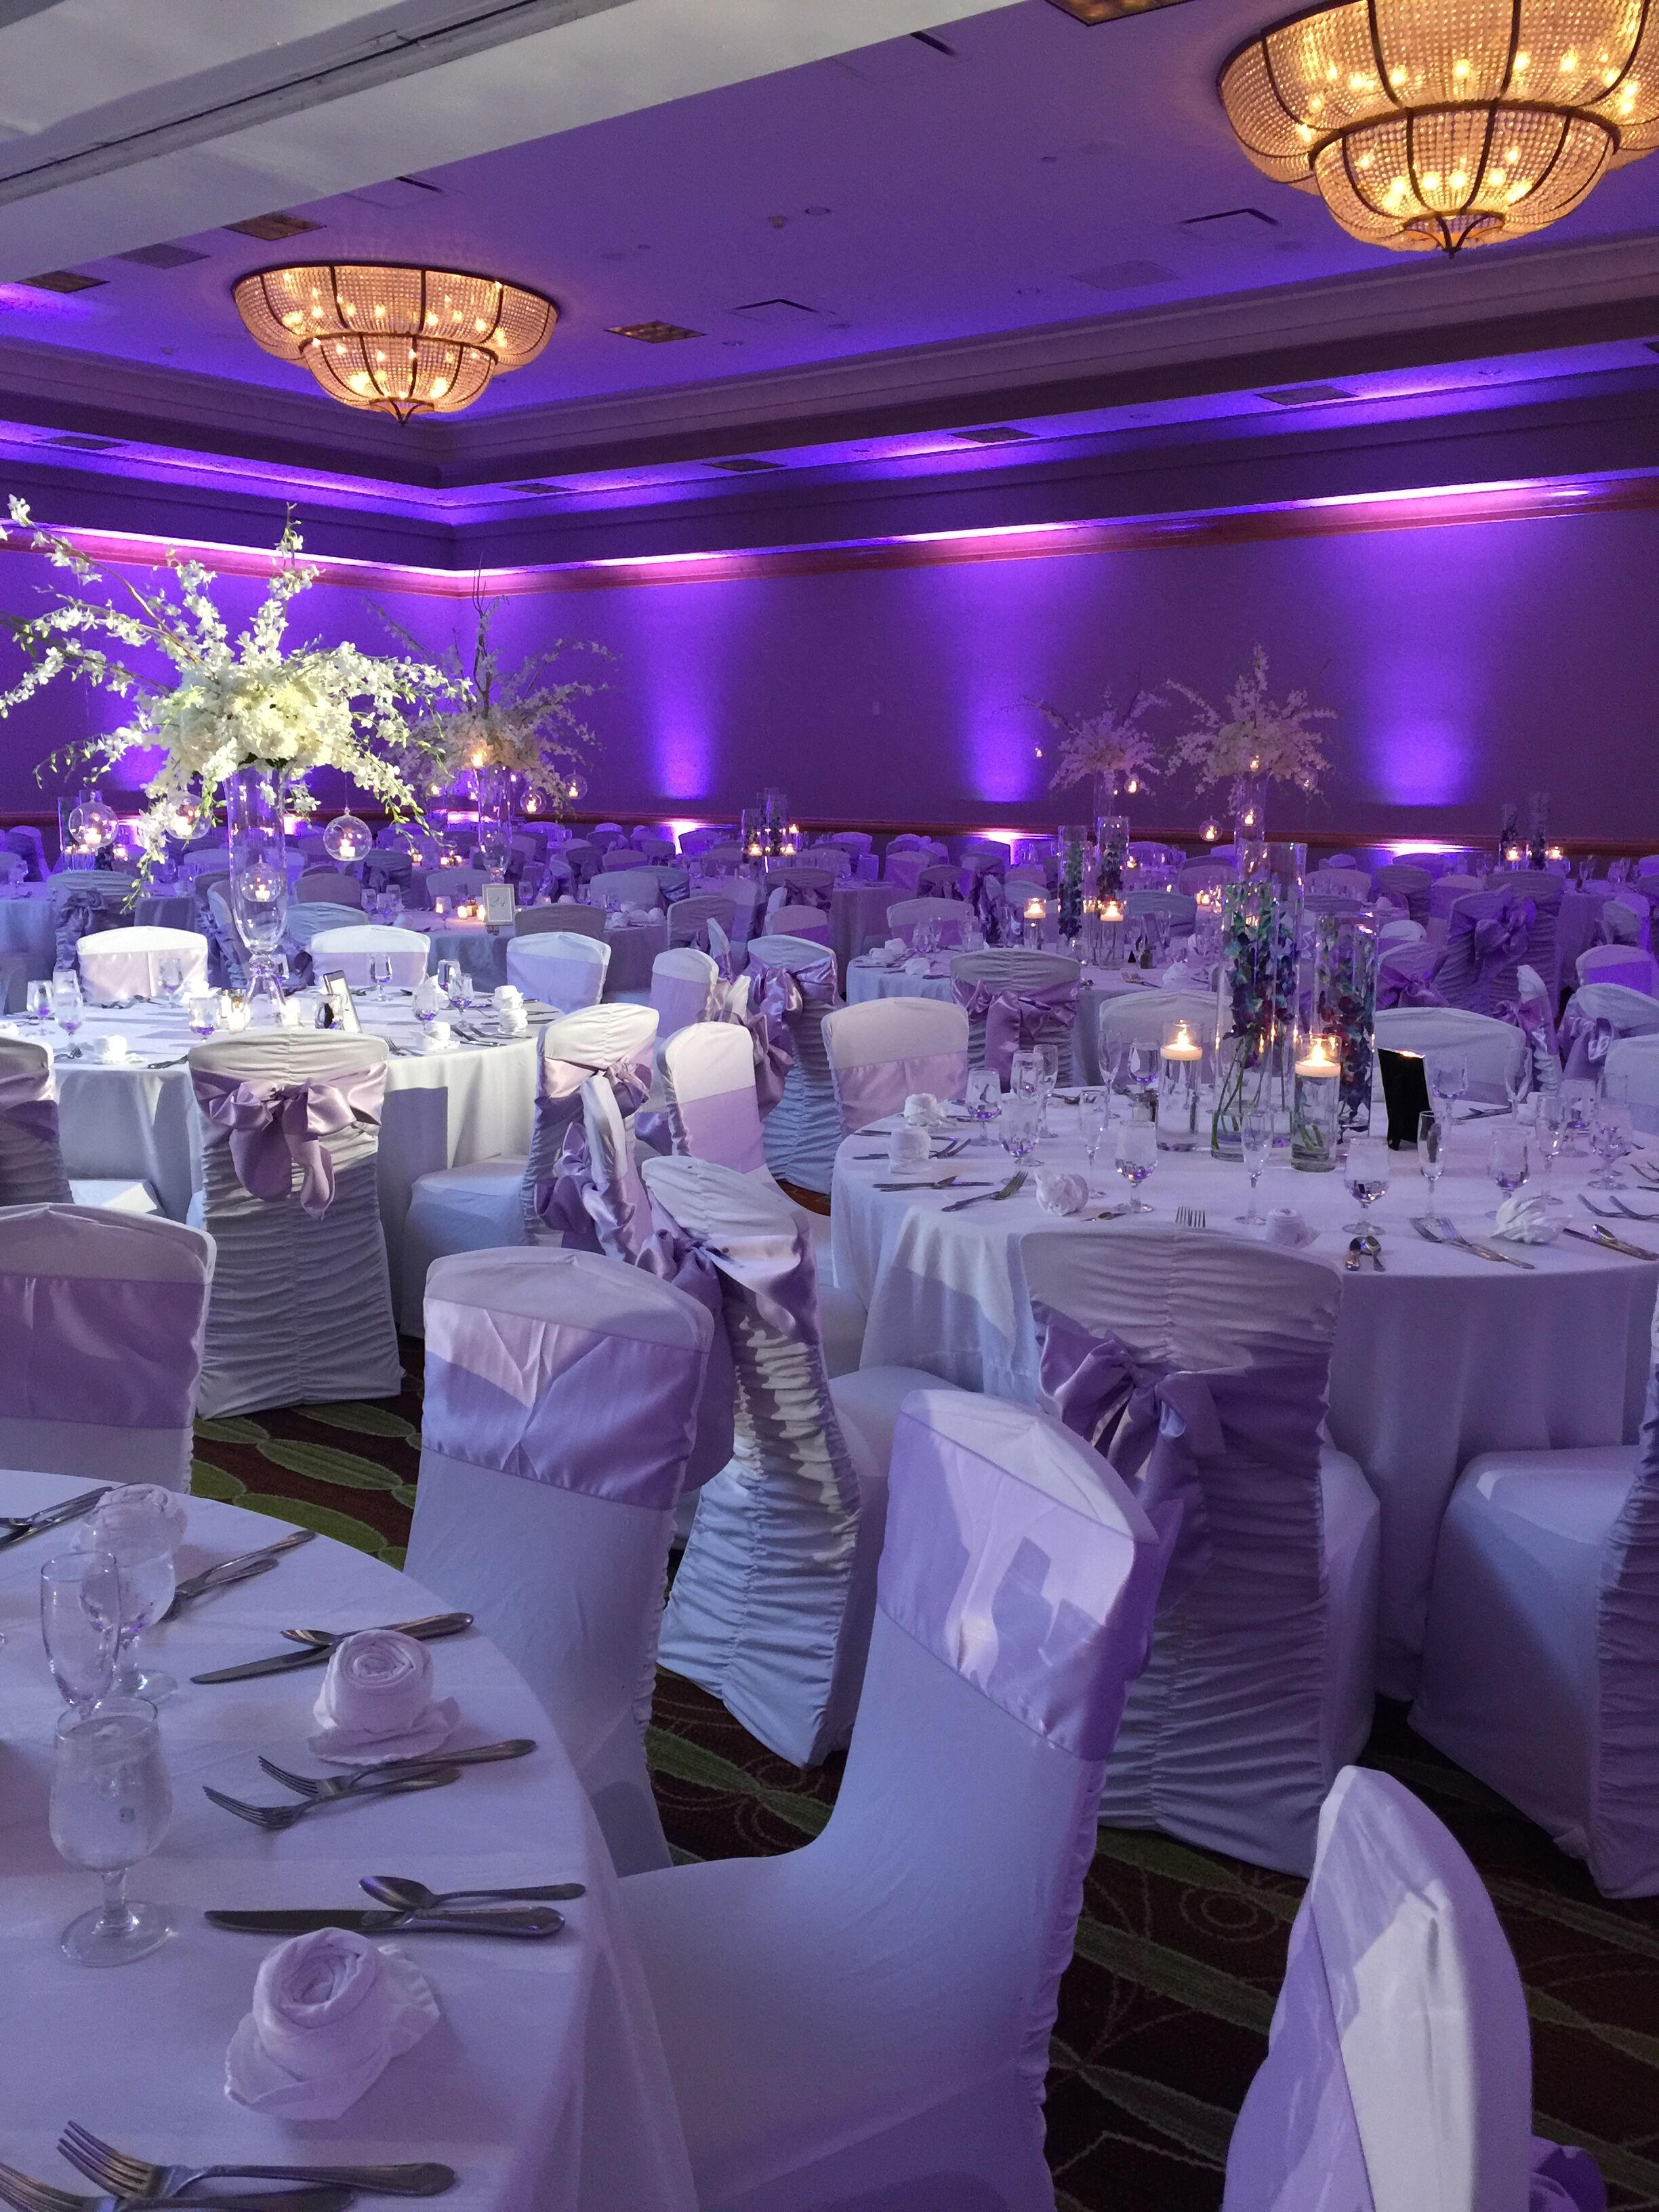 Wedding Reception Venues In Fishers IN